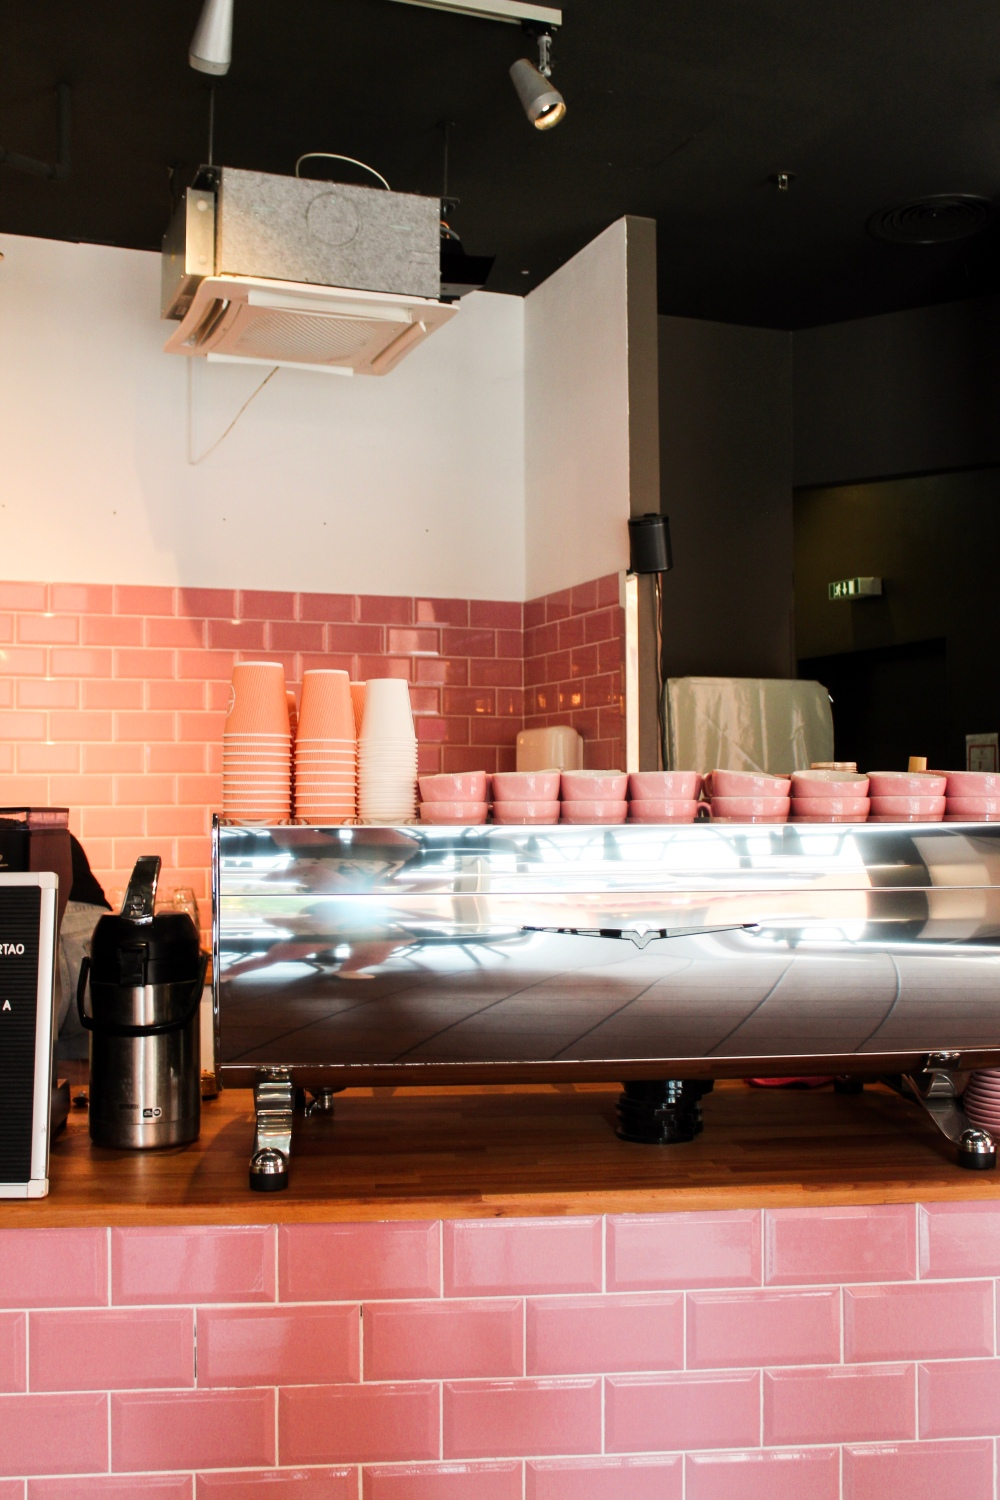 Coffee shop interior with pink tiles and pink mugs on top of the coffee machine.